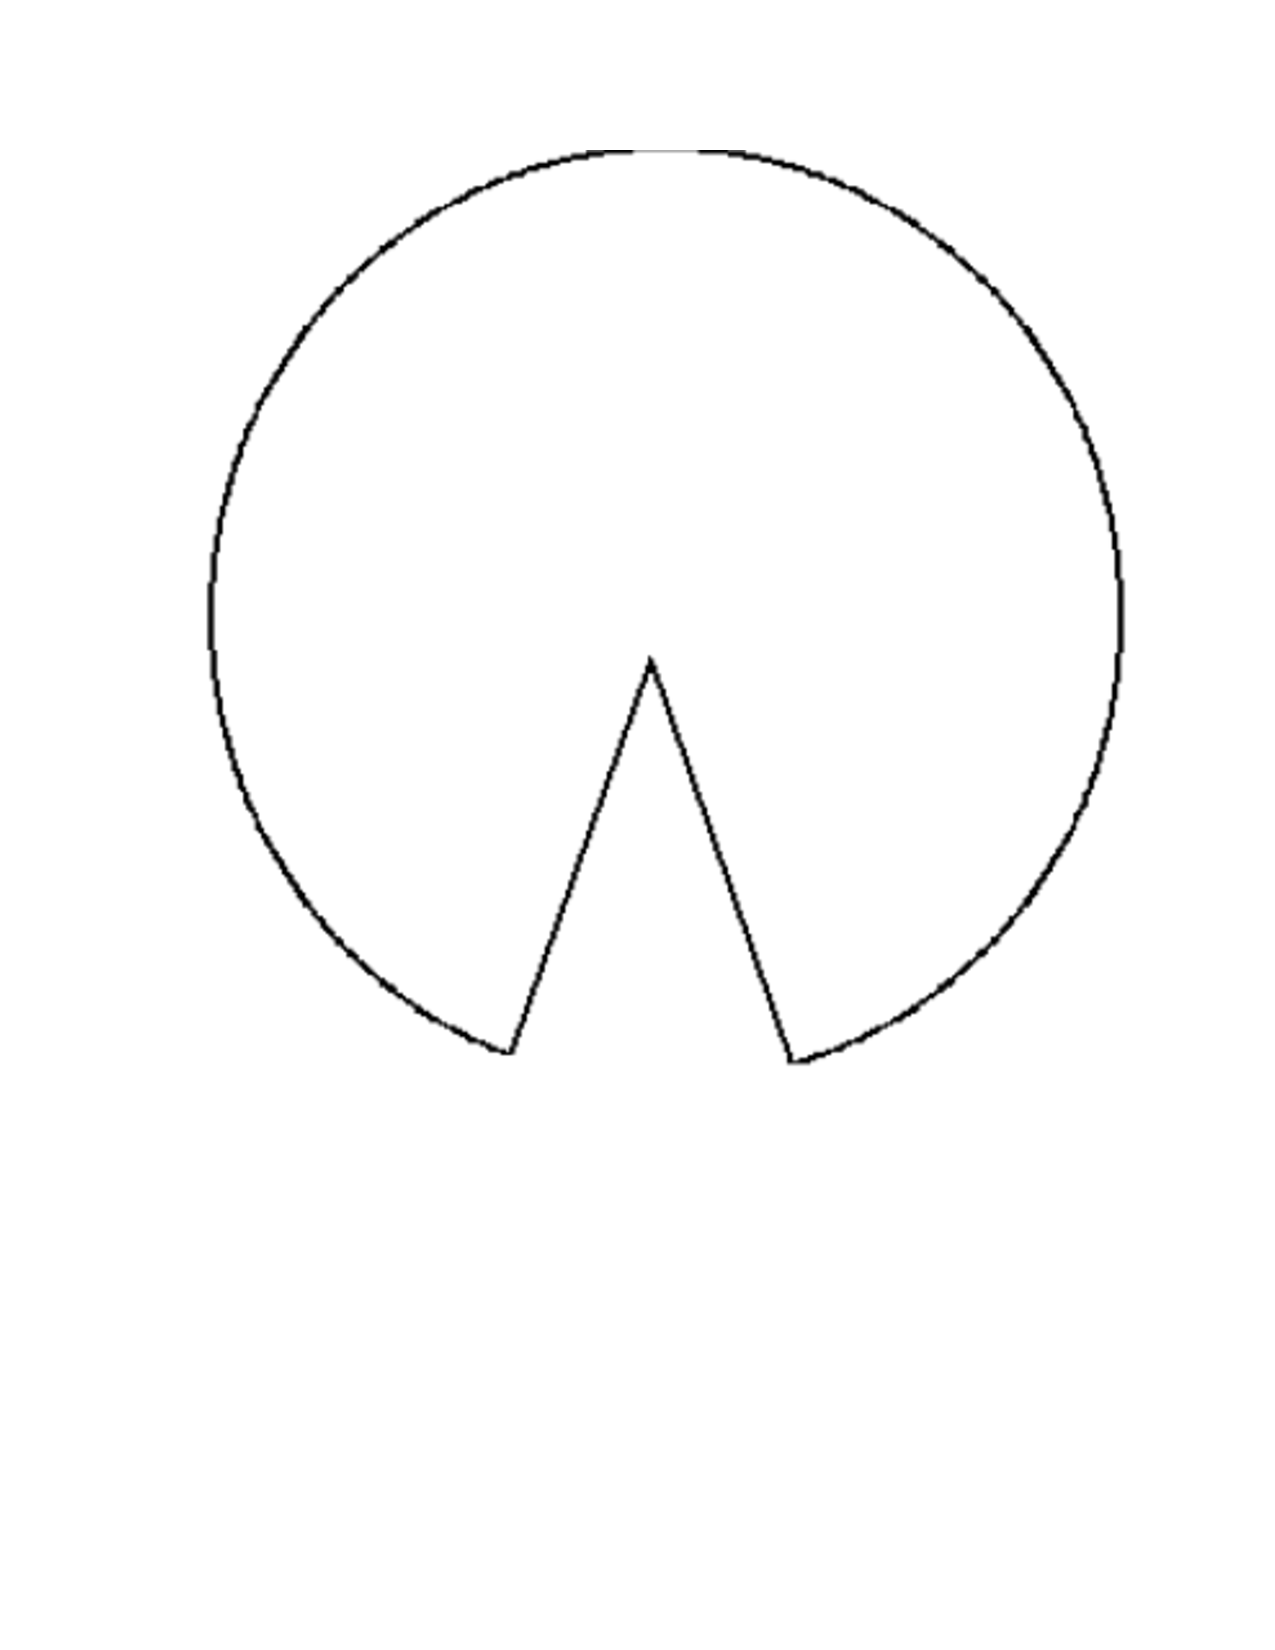 Lily Pad Outline Template